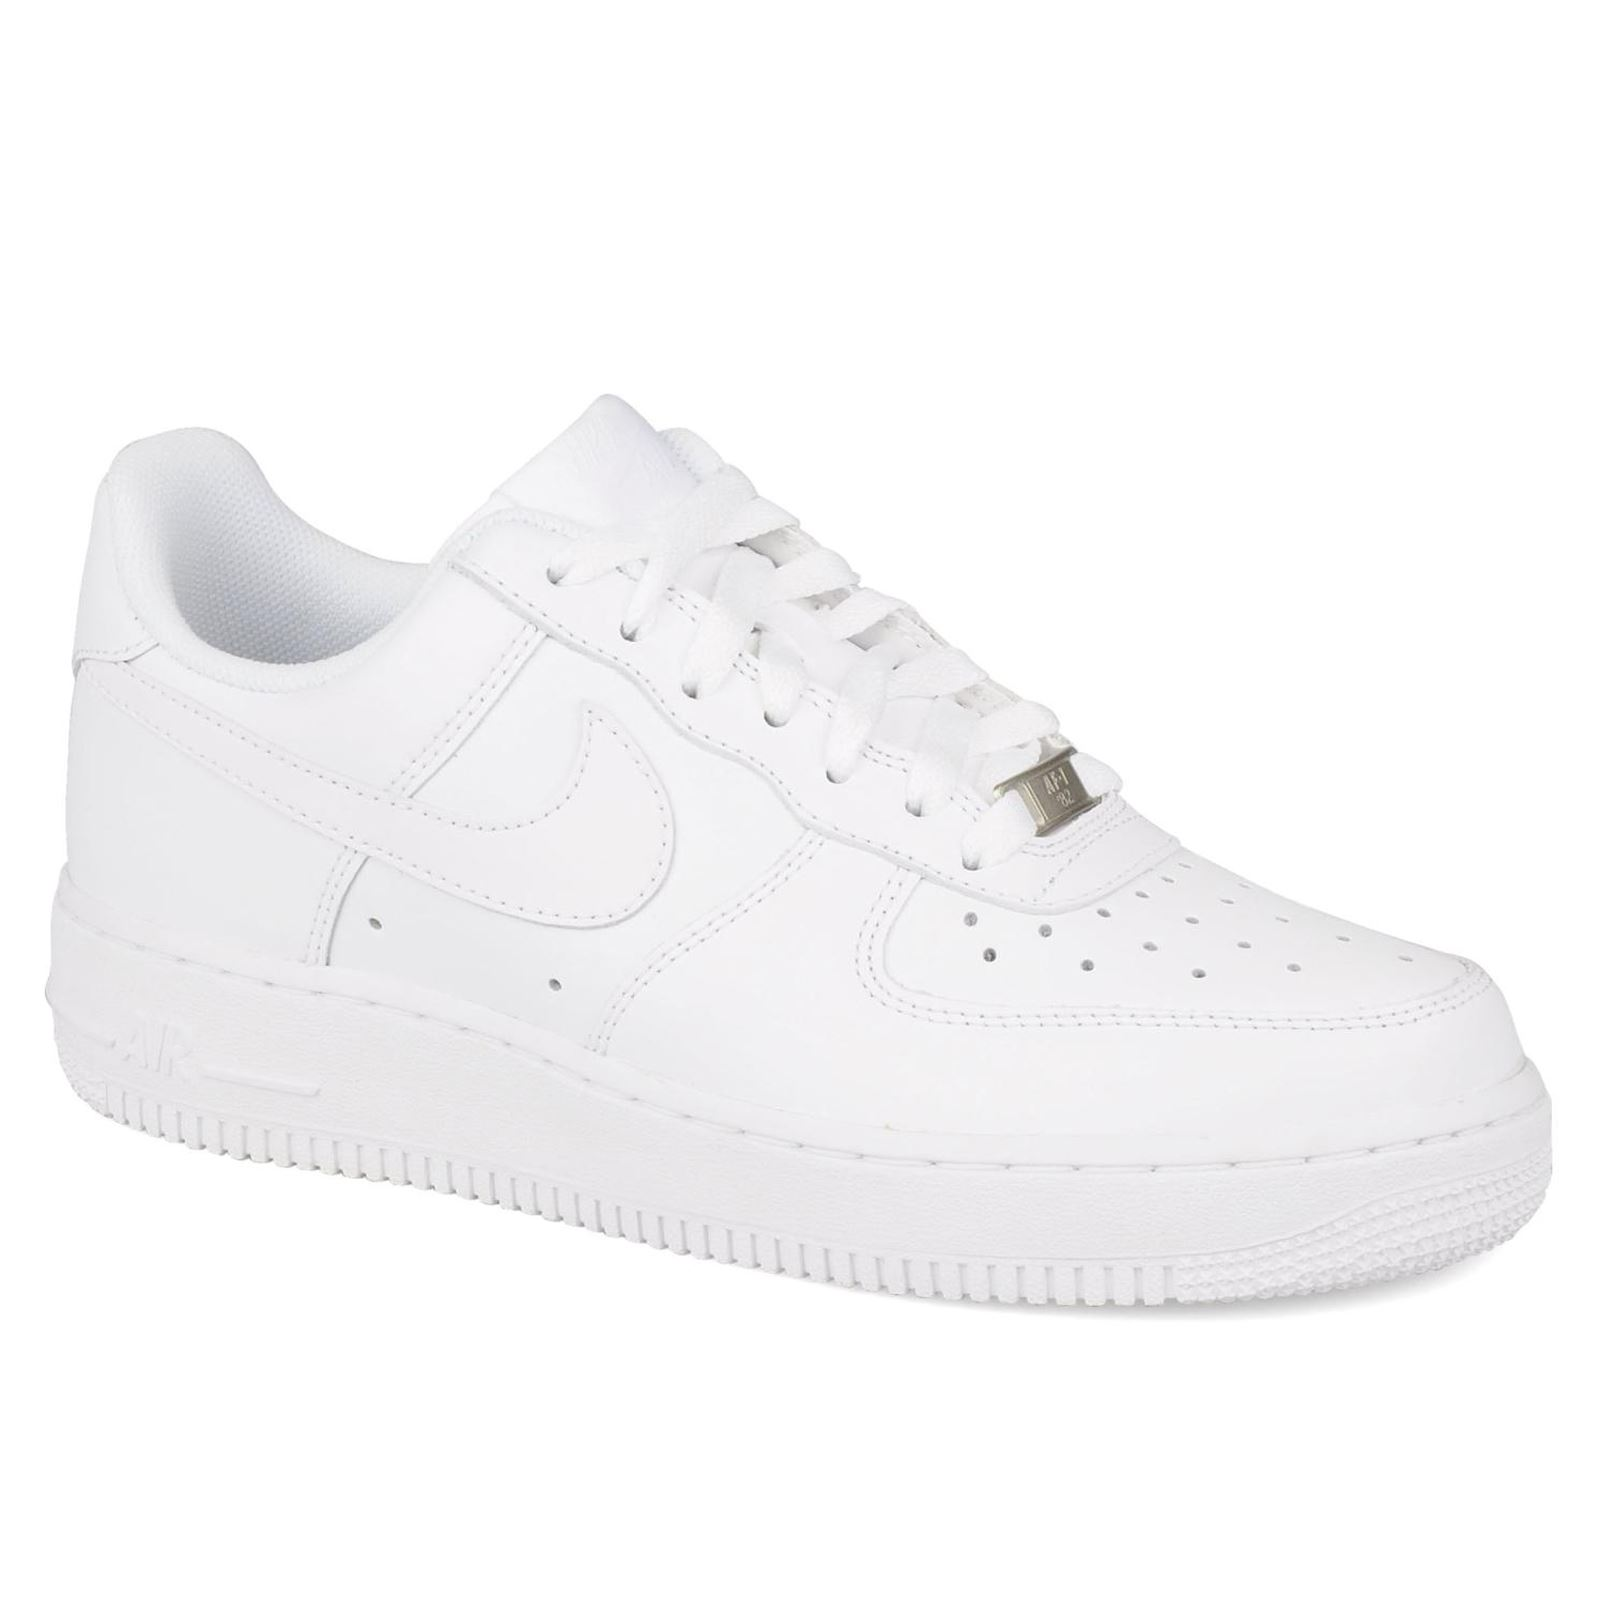 nike air force 1 herre pricerunner uk